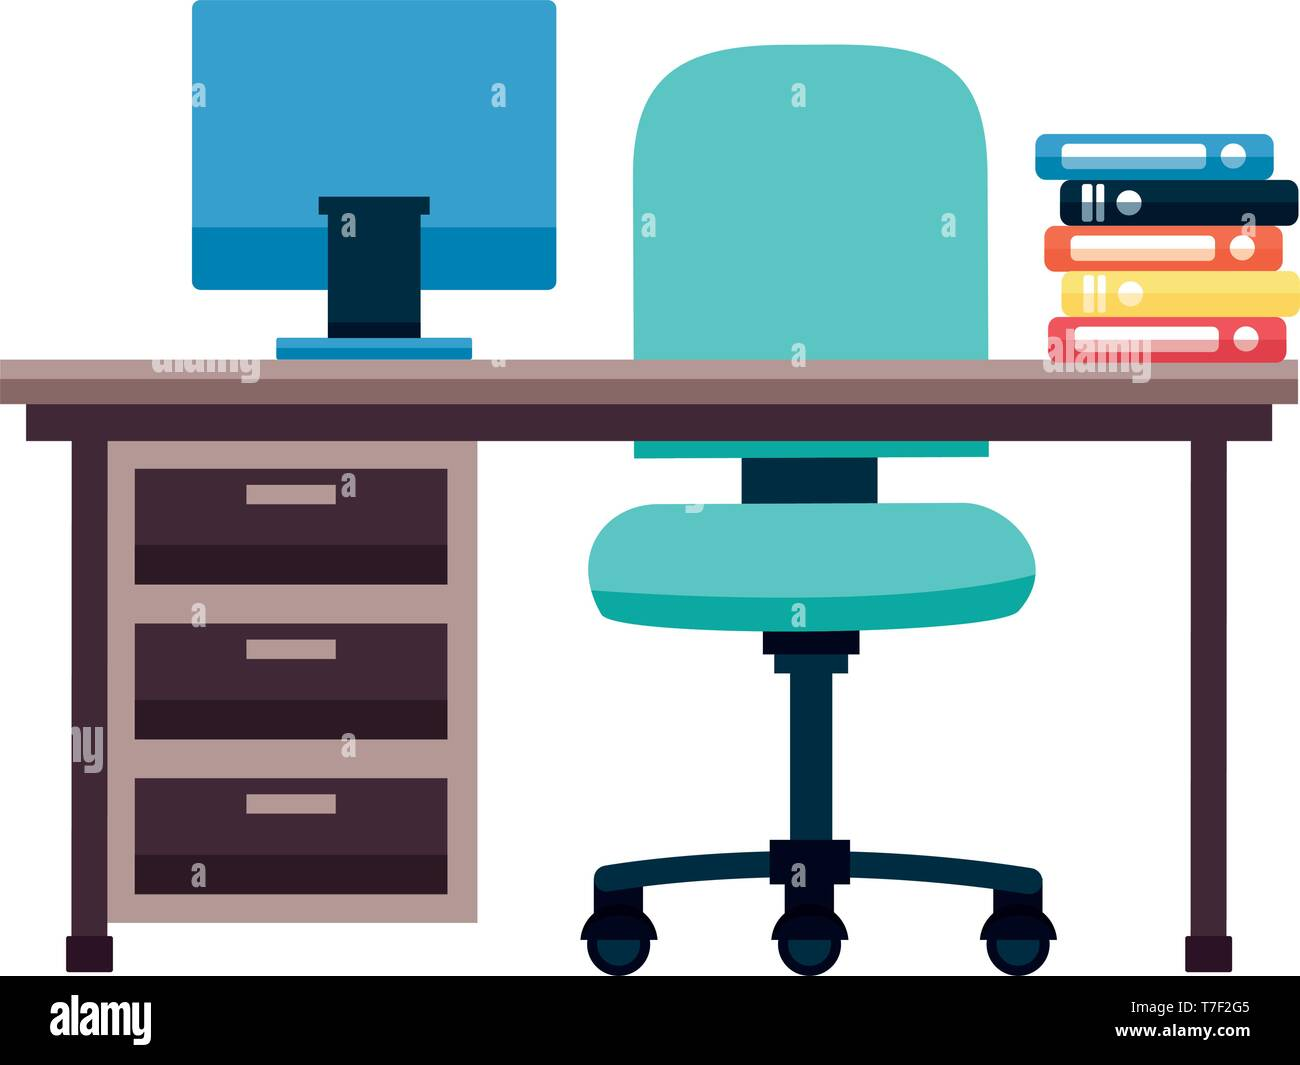 Phenomenal Office Desk Books Stock Vector Art Illustration Vector Interior Design Ideas Clesiryabchikinfo